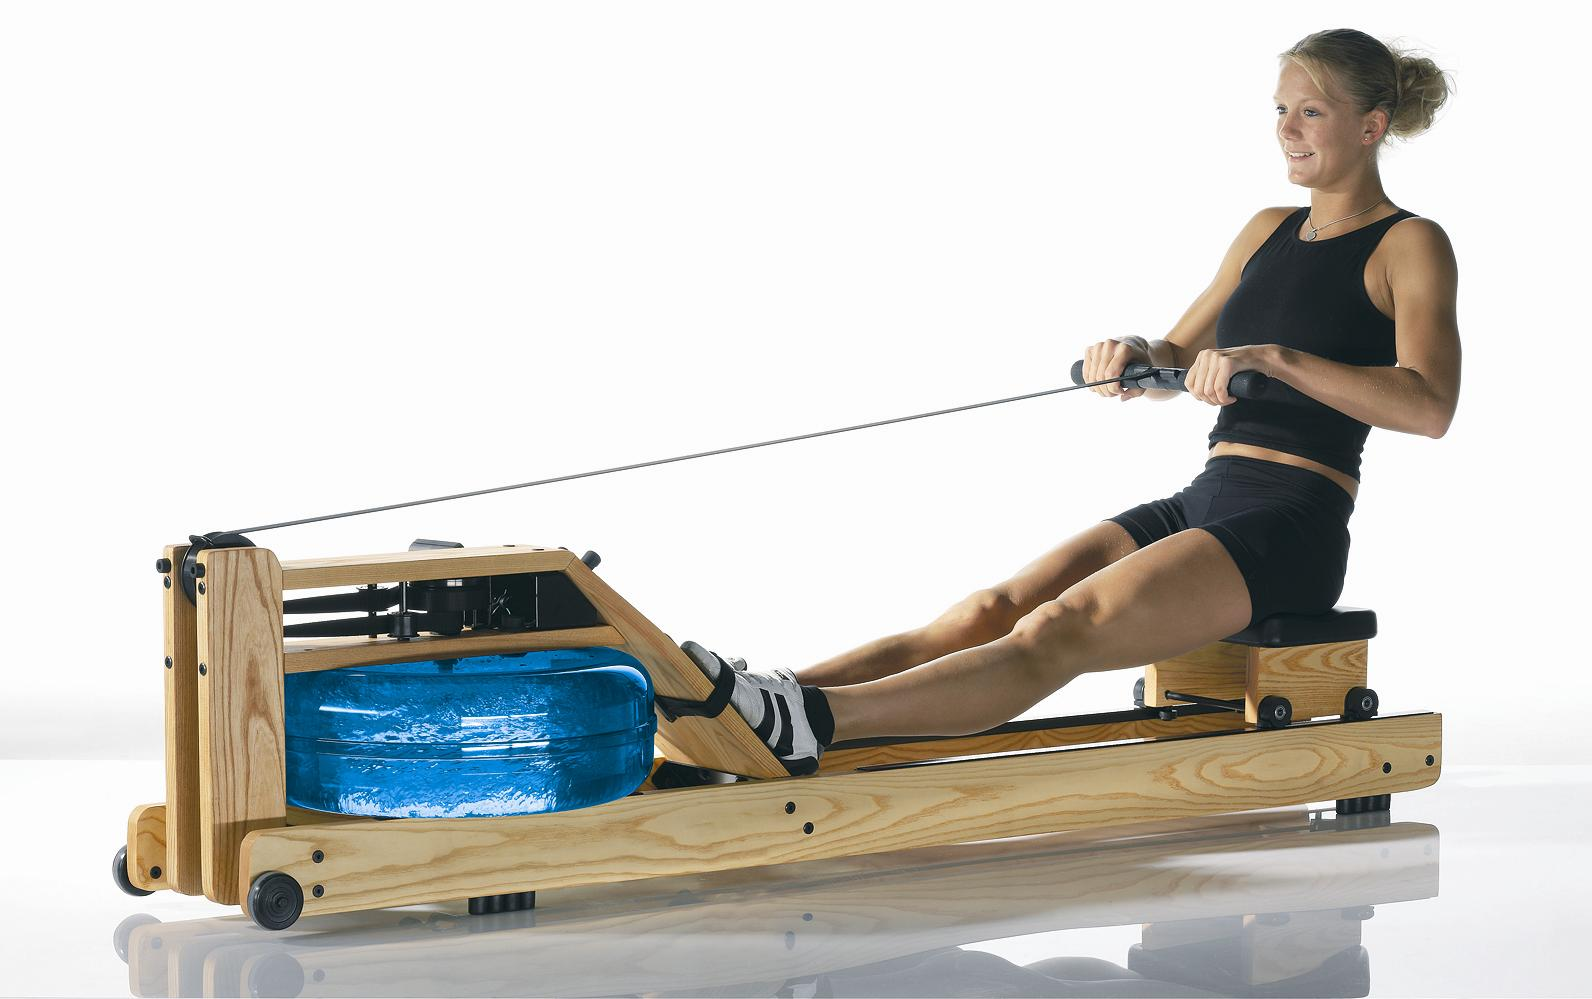 How To Choose A Good Rowing Machine?